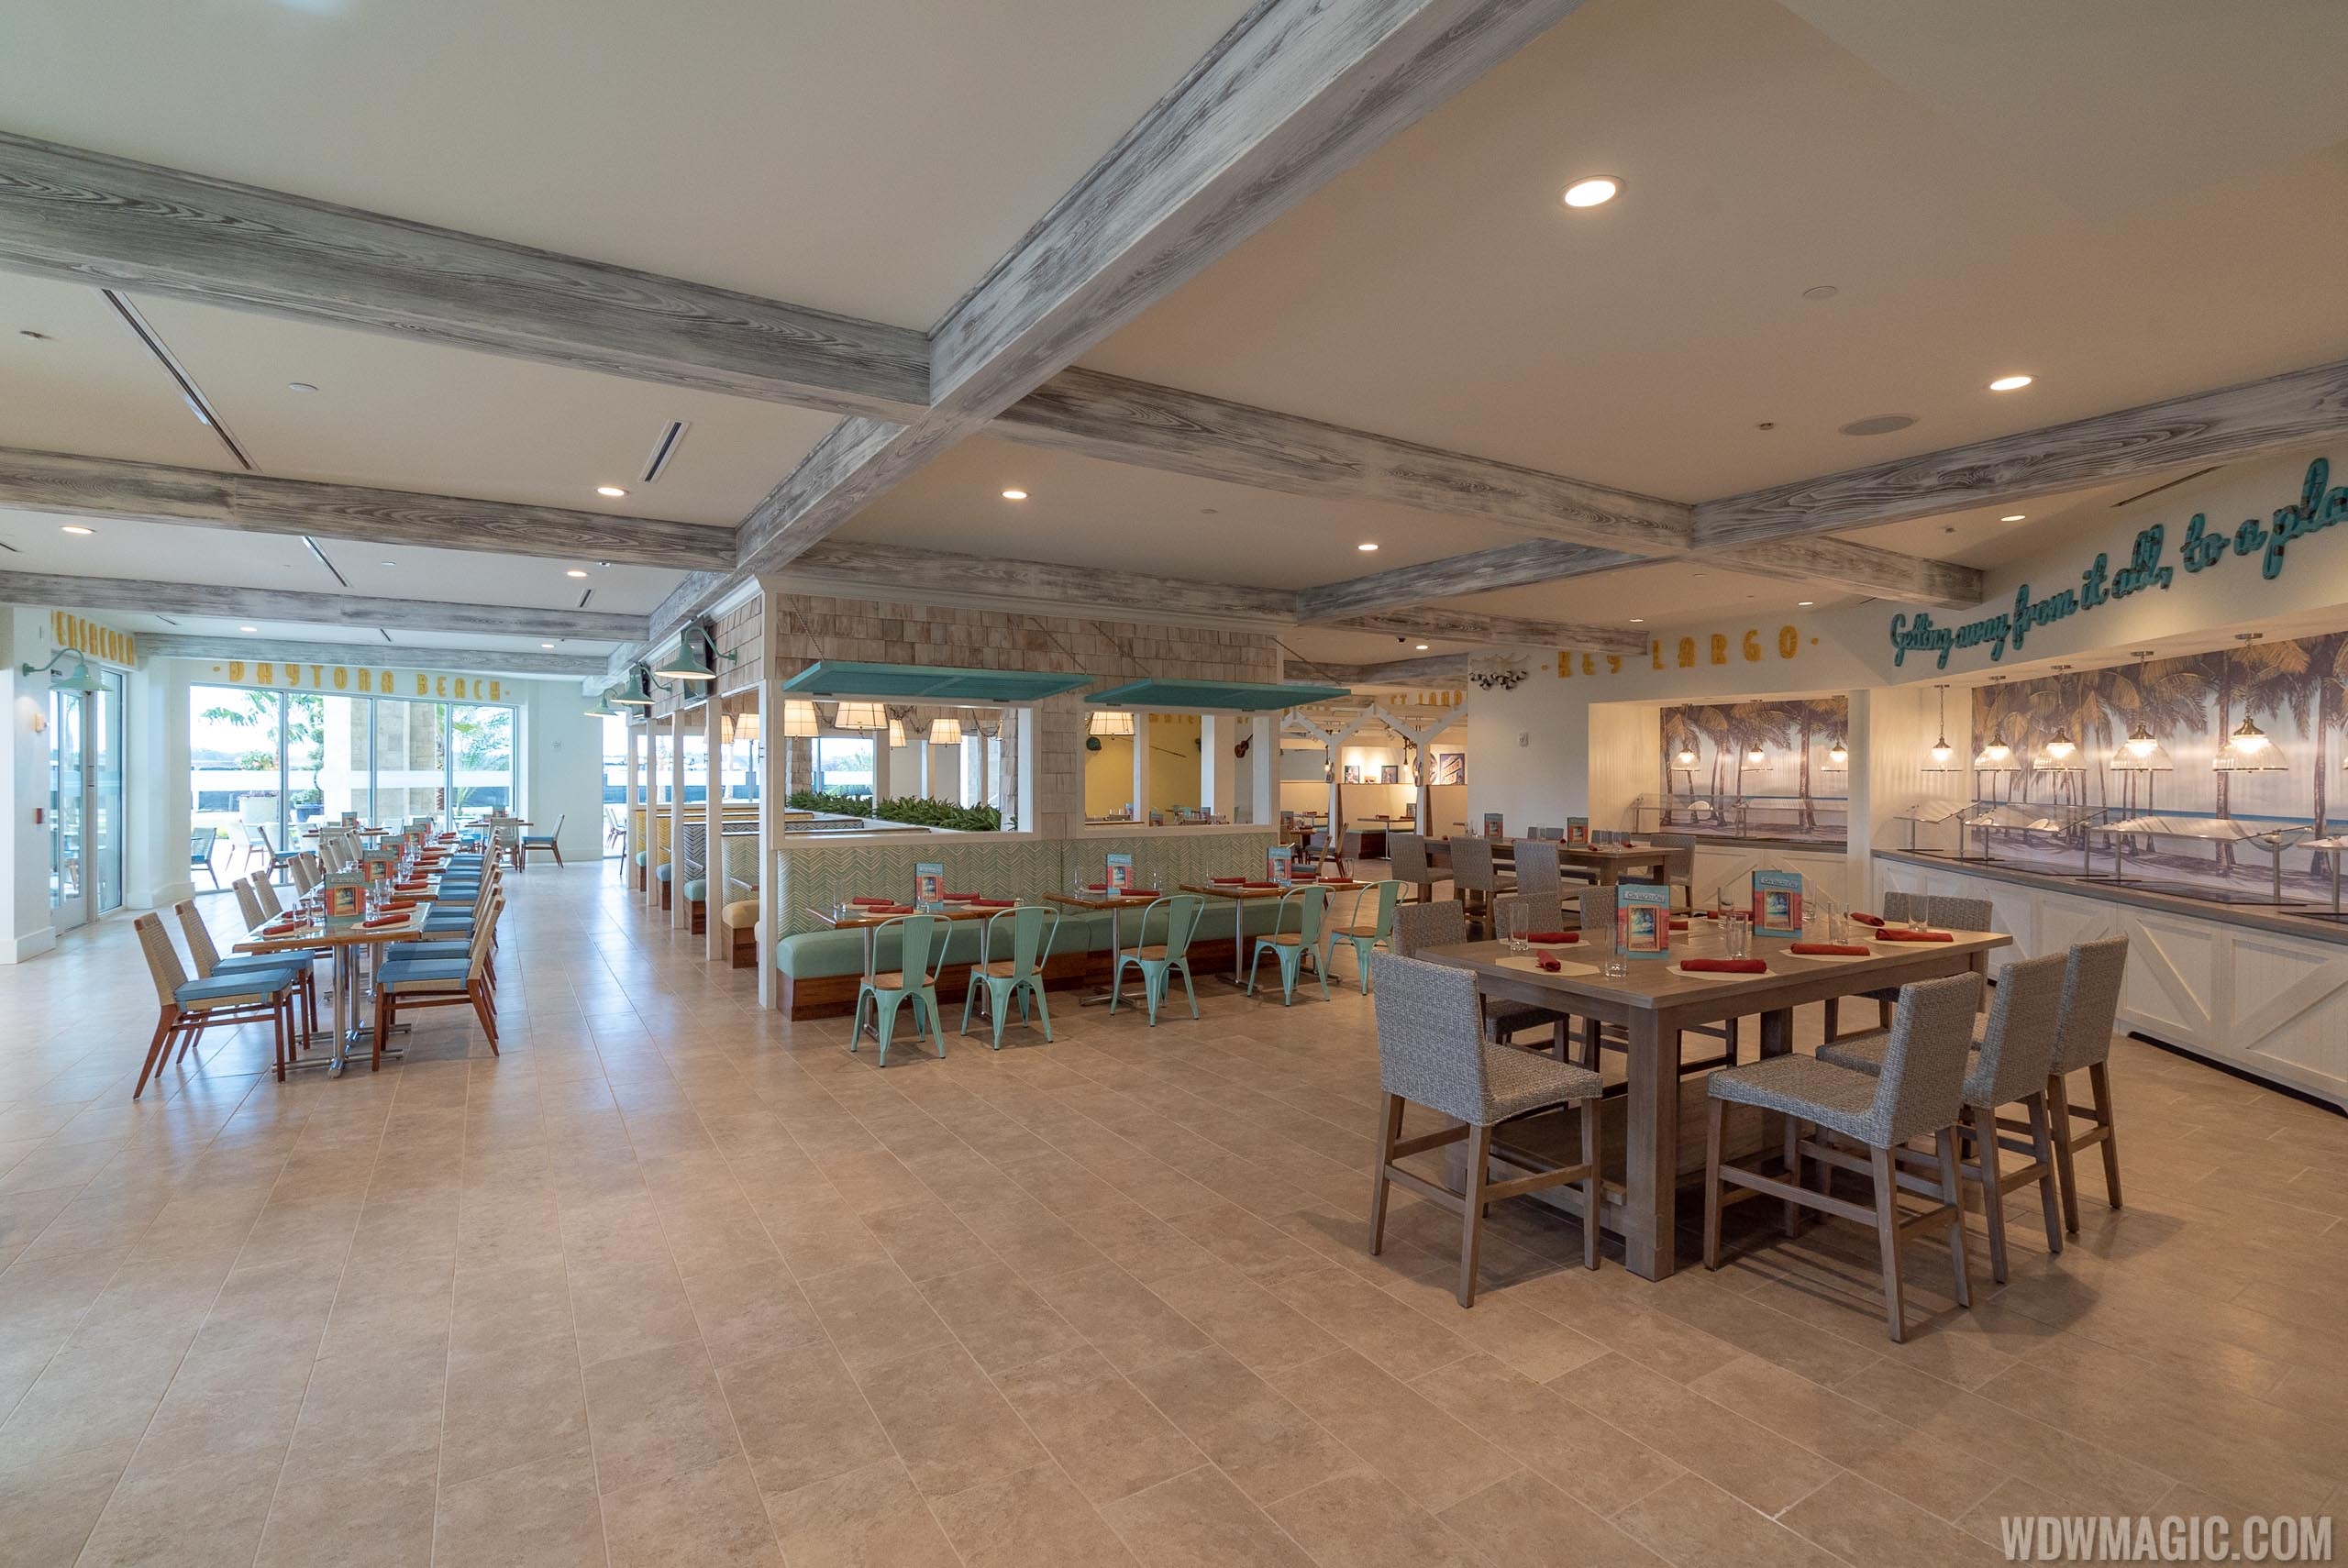 Margaritaville Resort Orlando - Inside On Vacation Restaurant